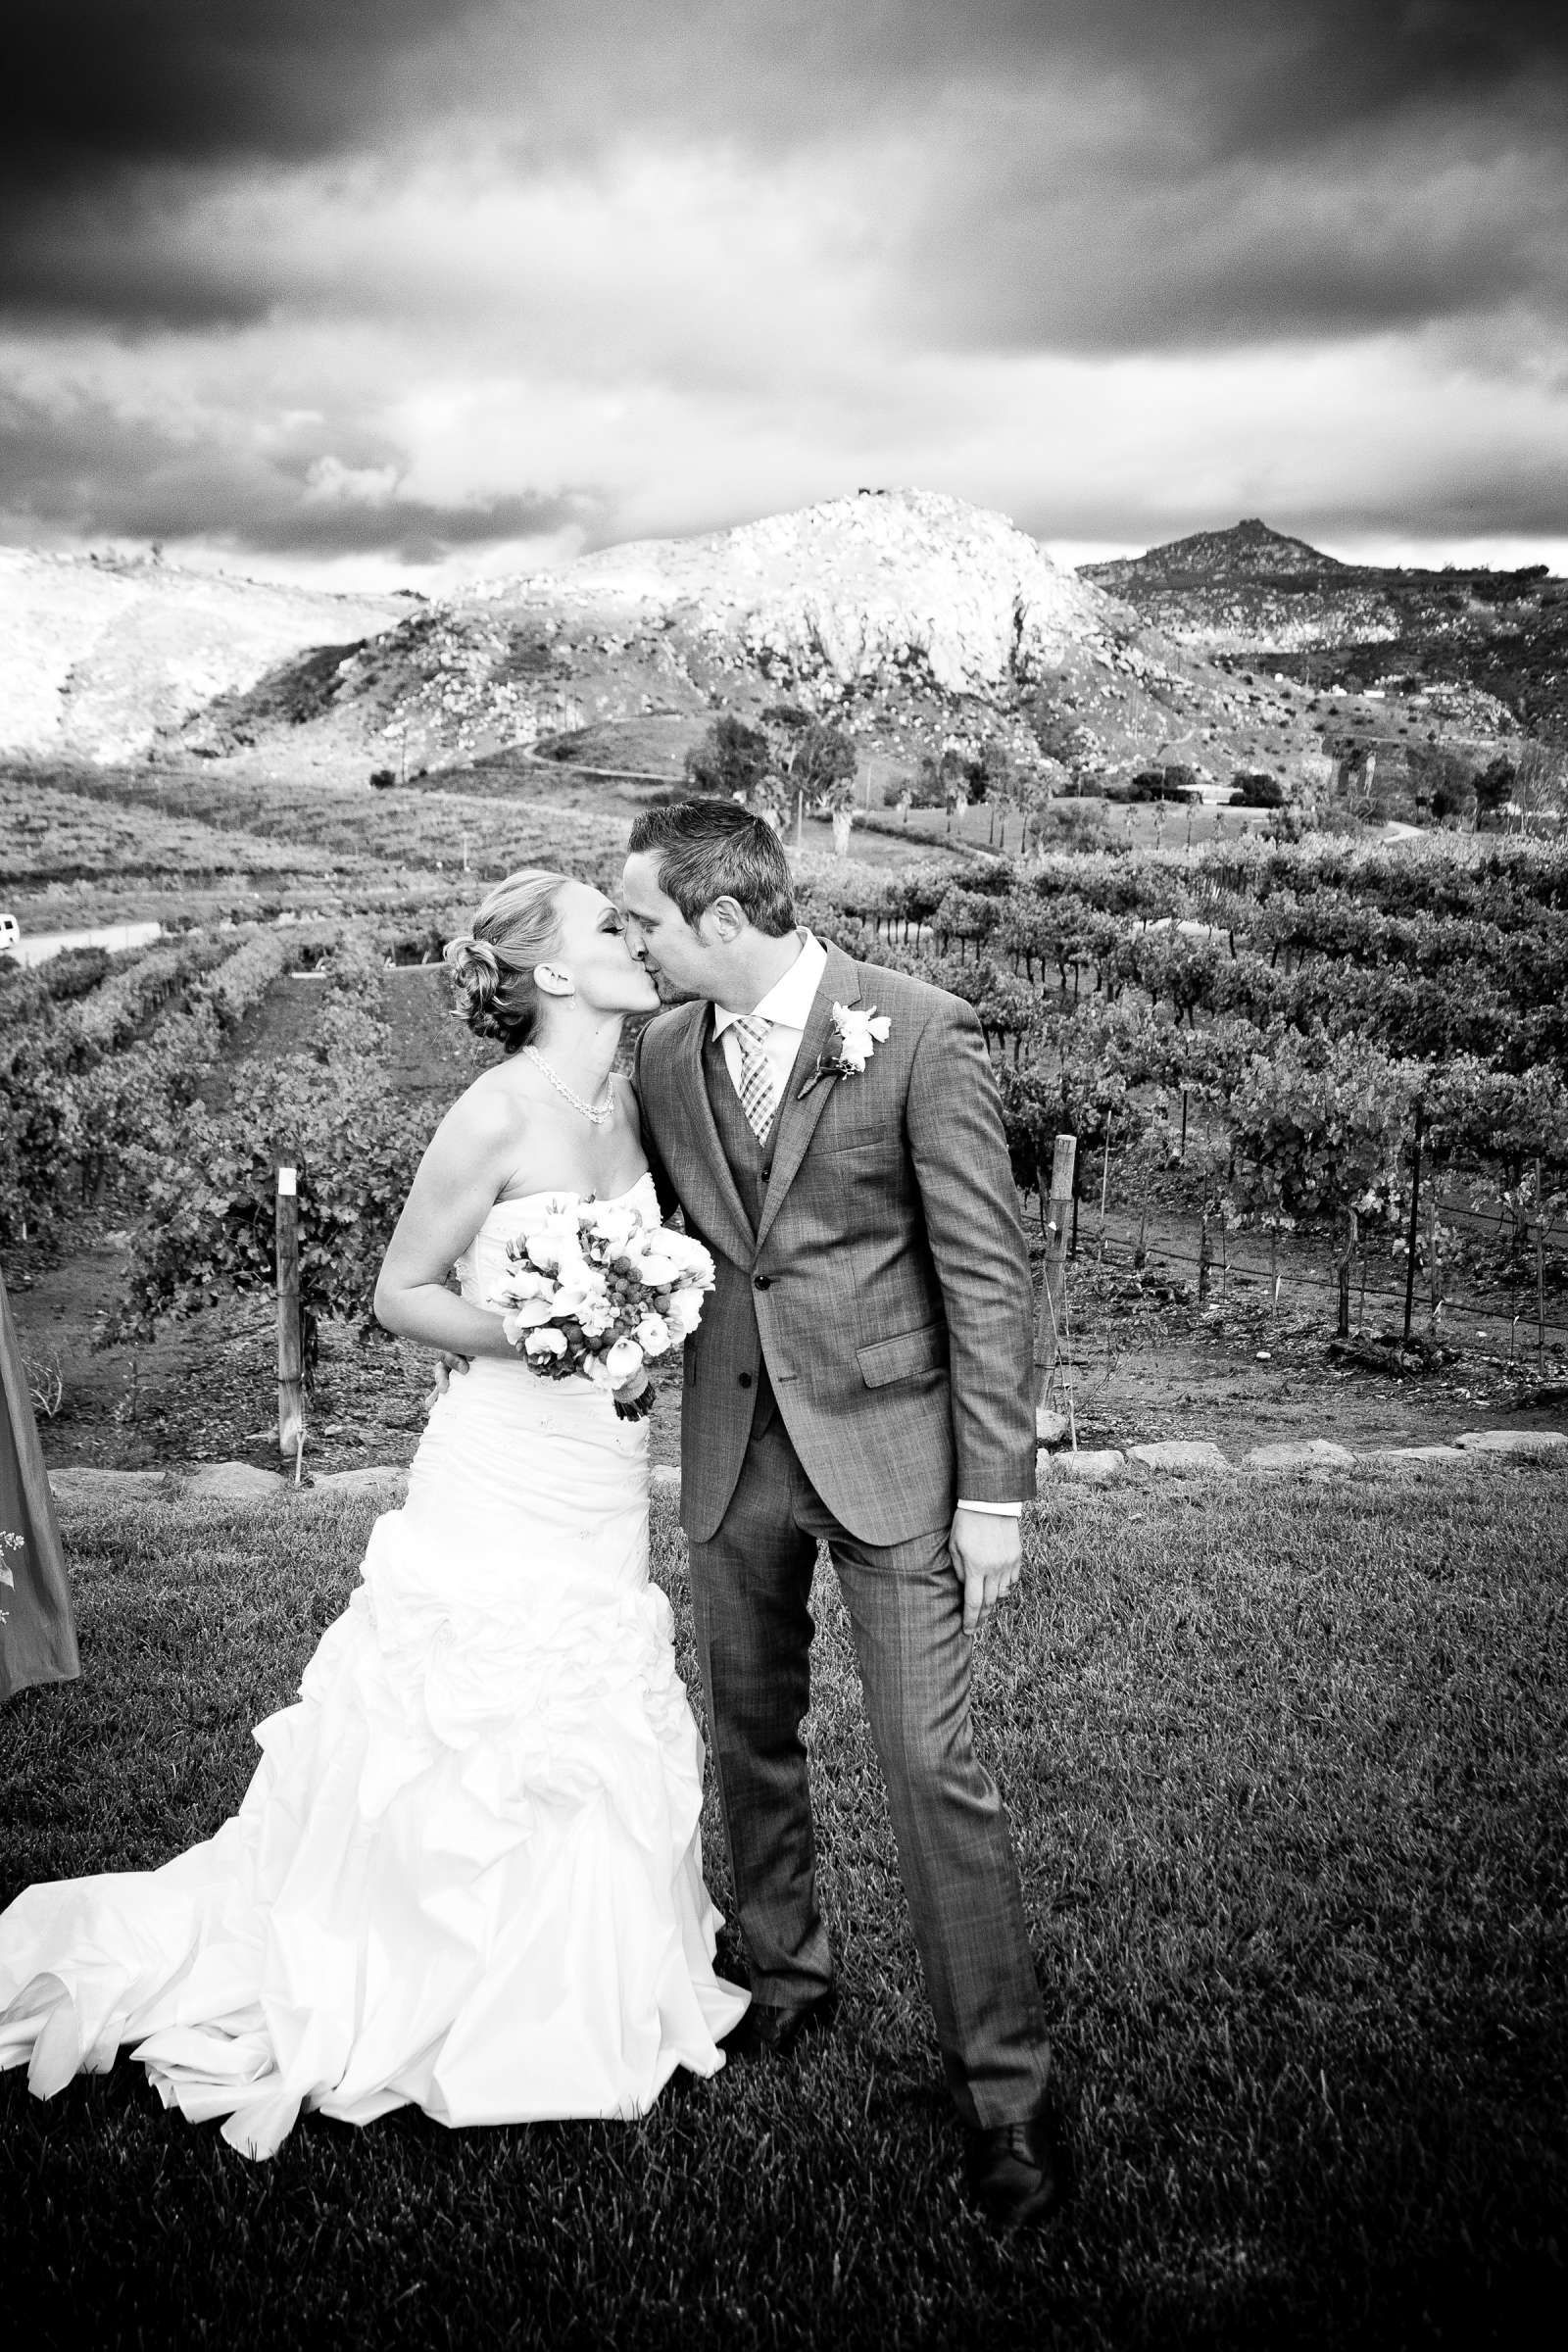 Orfila Vineyards Wedding, Mindy and Bryan Wedding Photo #29 by True Photography